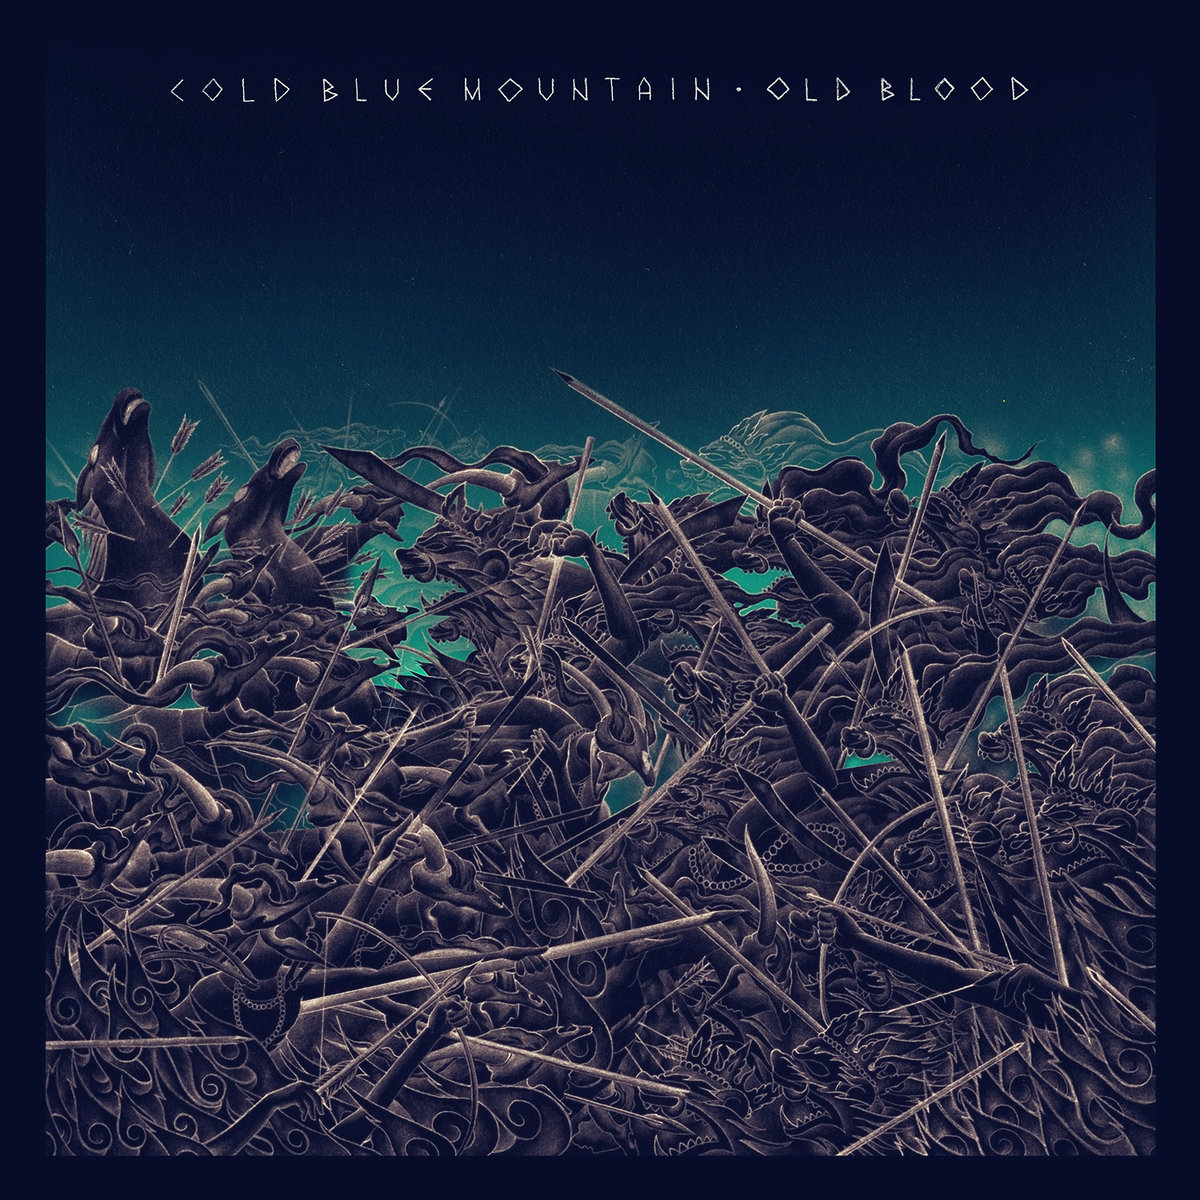 Cold Blue Mountain - New Alliances @ 'Old Blood' album (metal, crust)